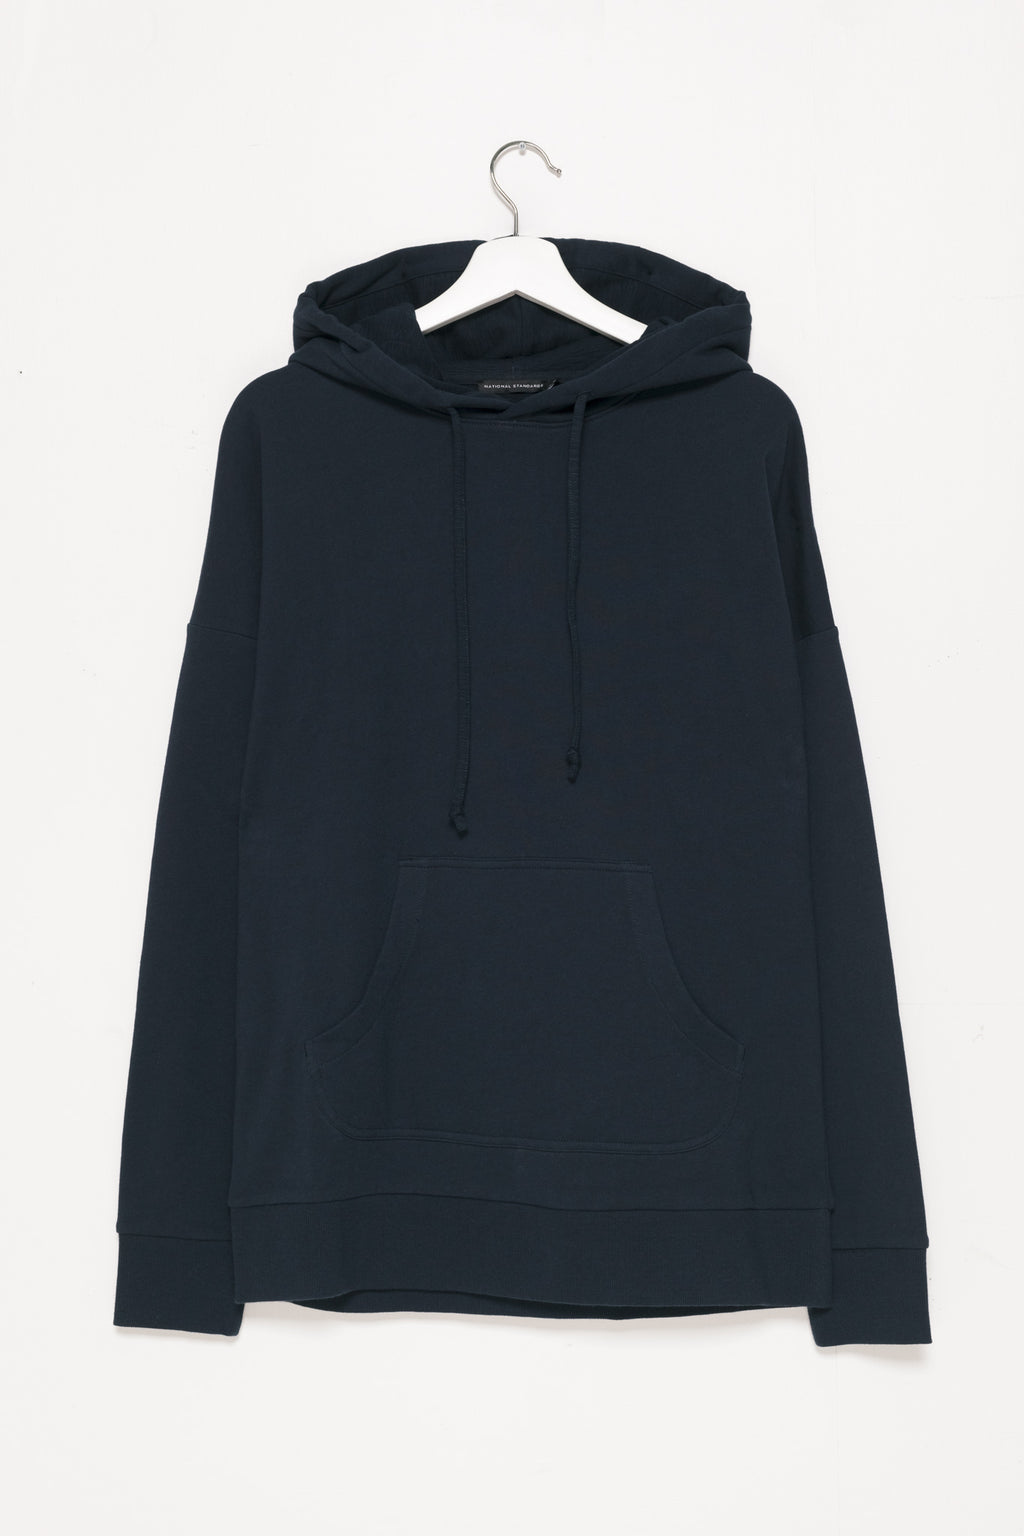 250g French Terry Pullover Hoodie in Navy